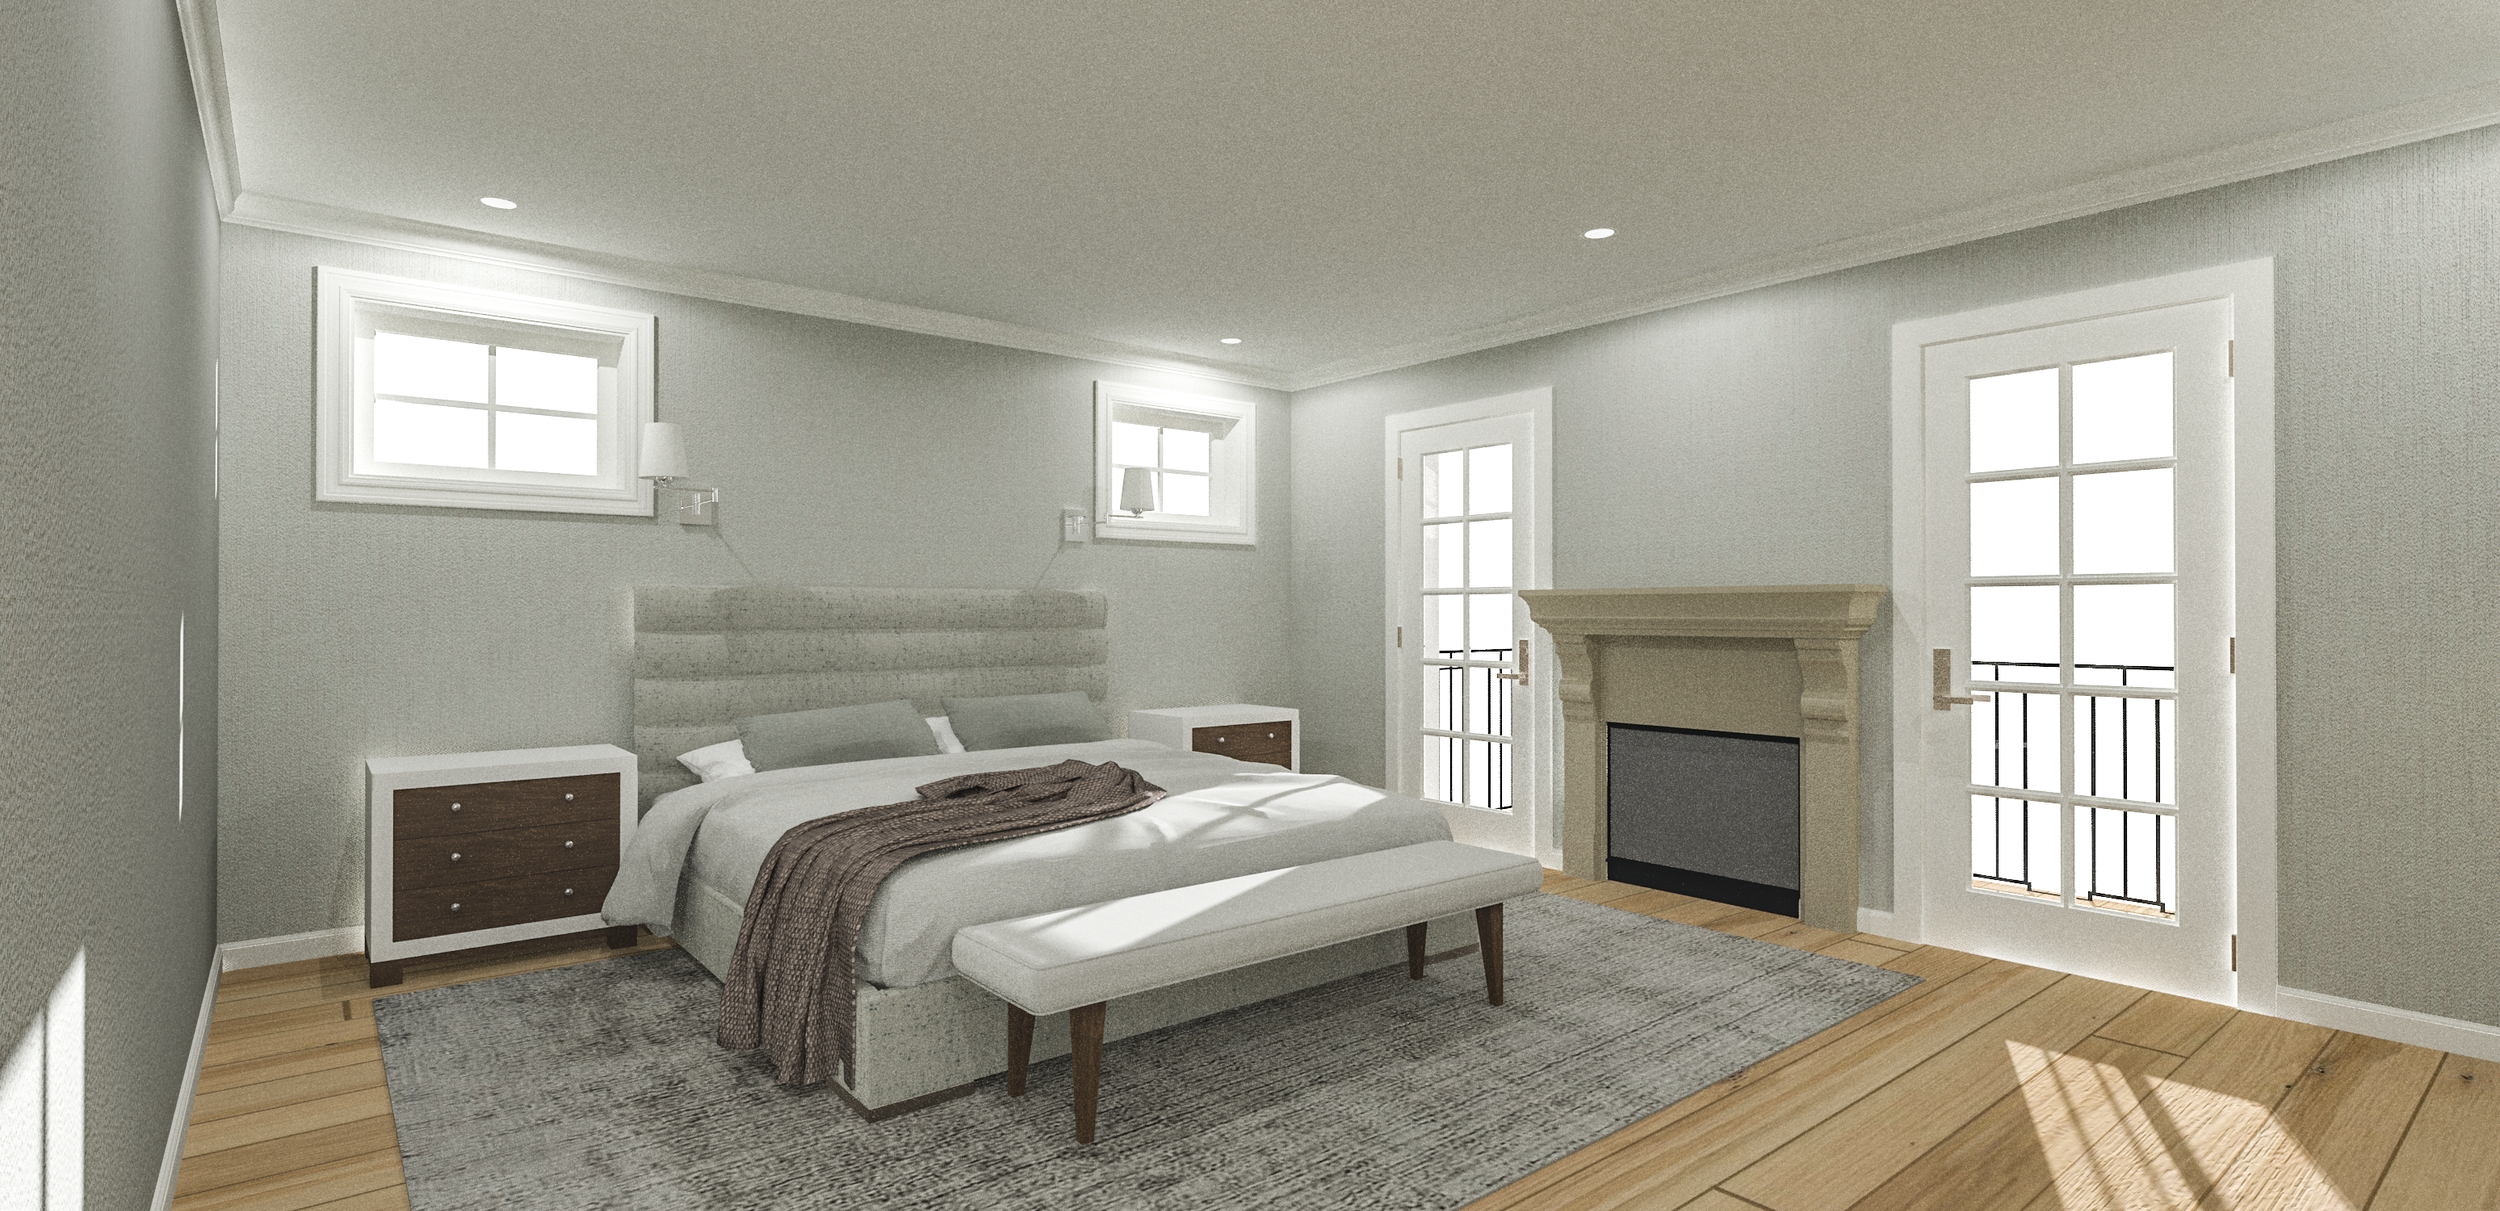 Master Bedroom Rendering | Designed by Victoria Holly Interiors.png